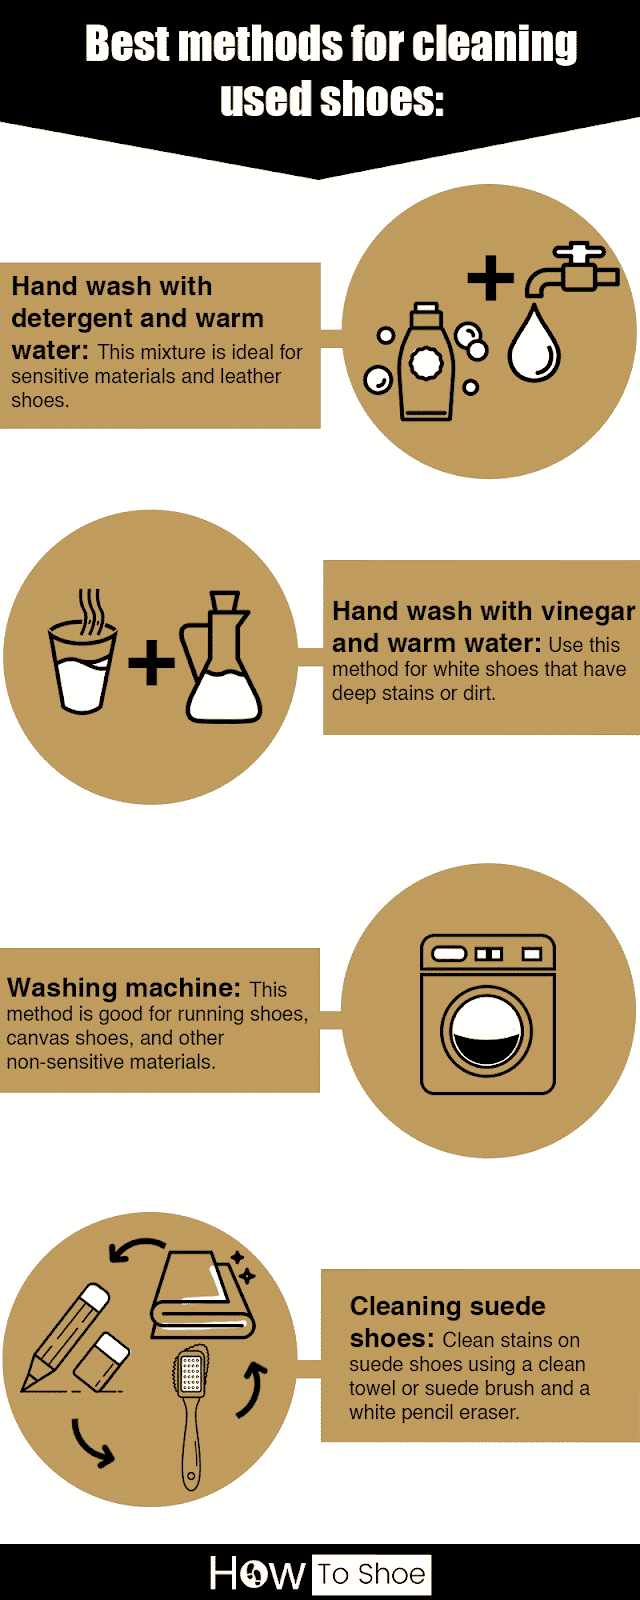 How to clean used shoes infographic